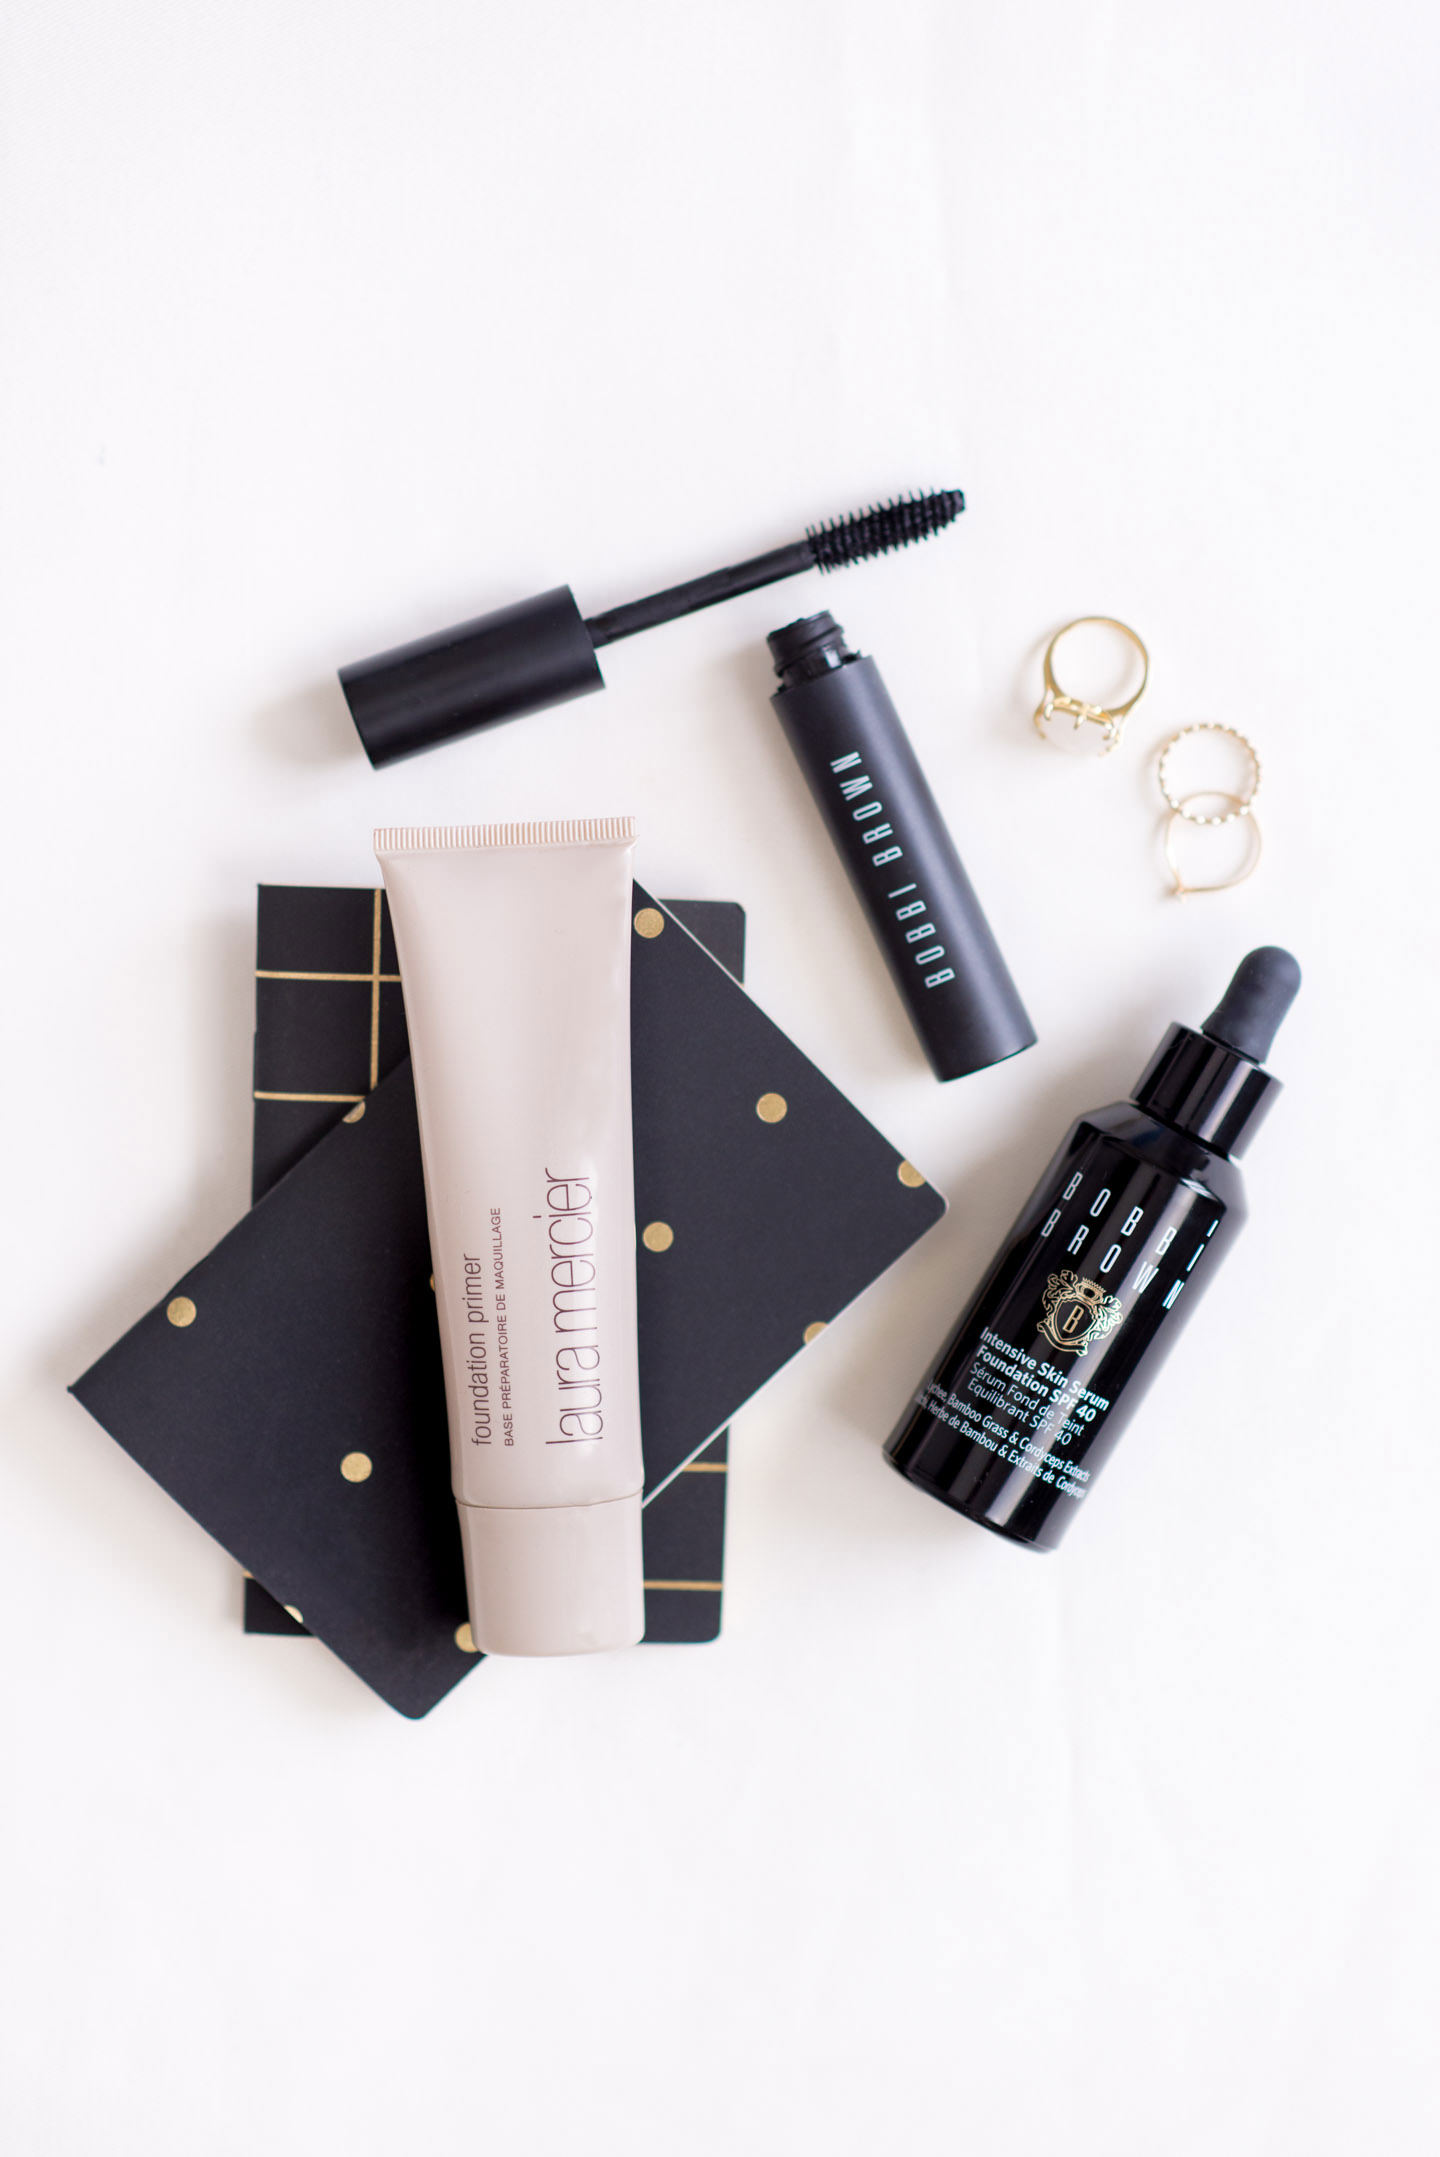 Blog-mode-And-the-City-Beaute-Favoris-Beaute-Bobbi-Brown